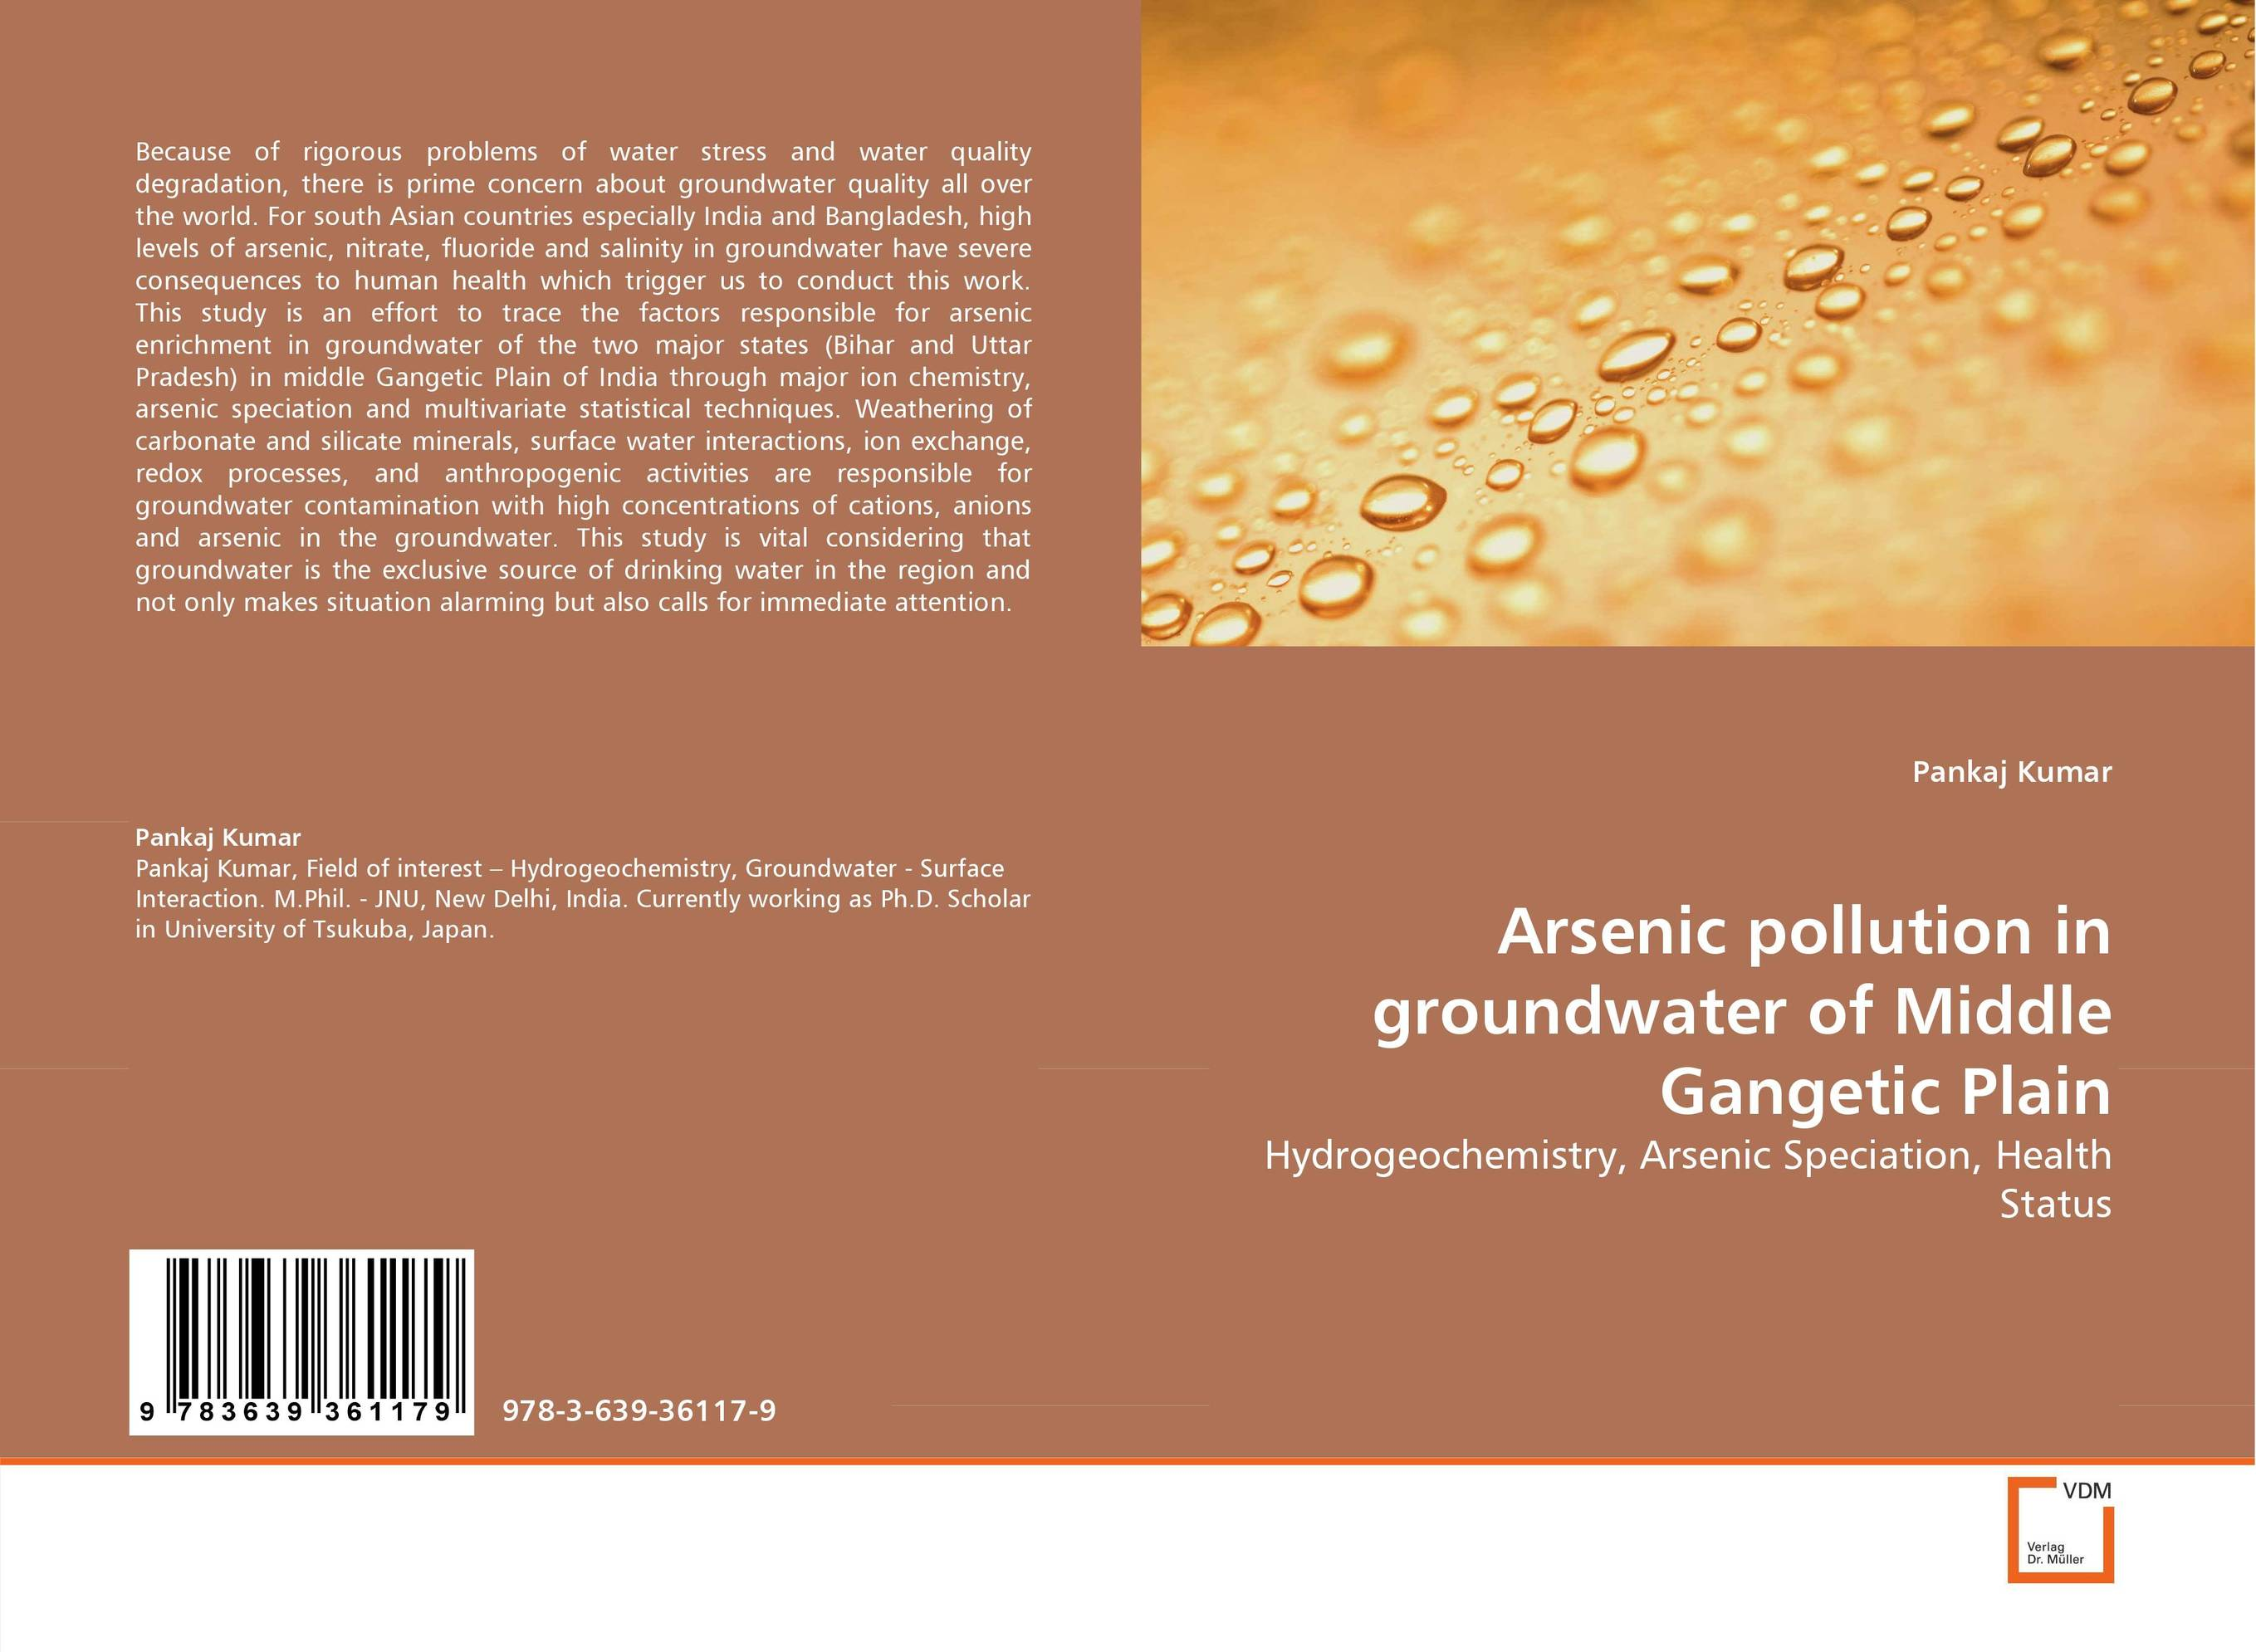 Arsenic pollution in groundwater of Middle Gangetic Plain